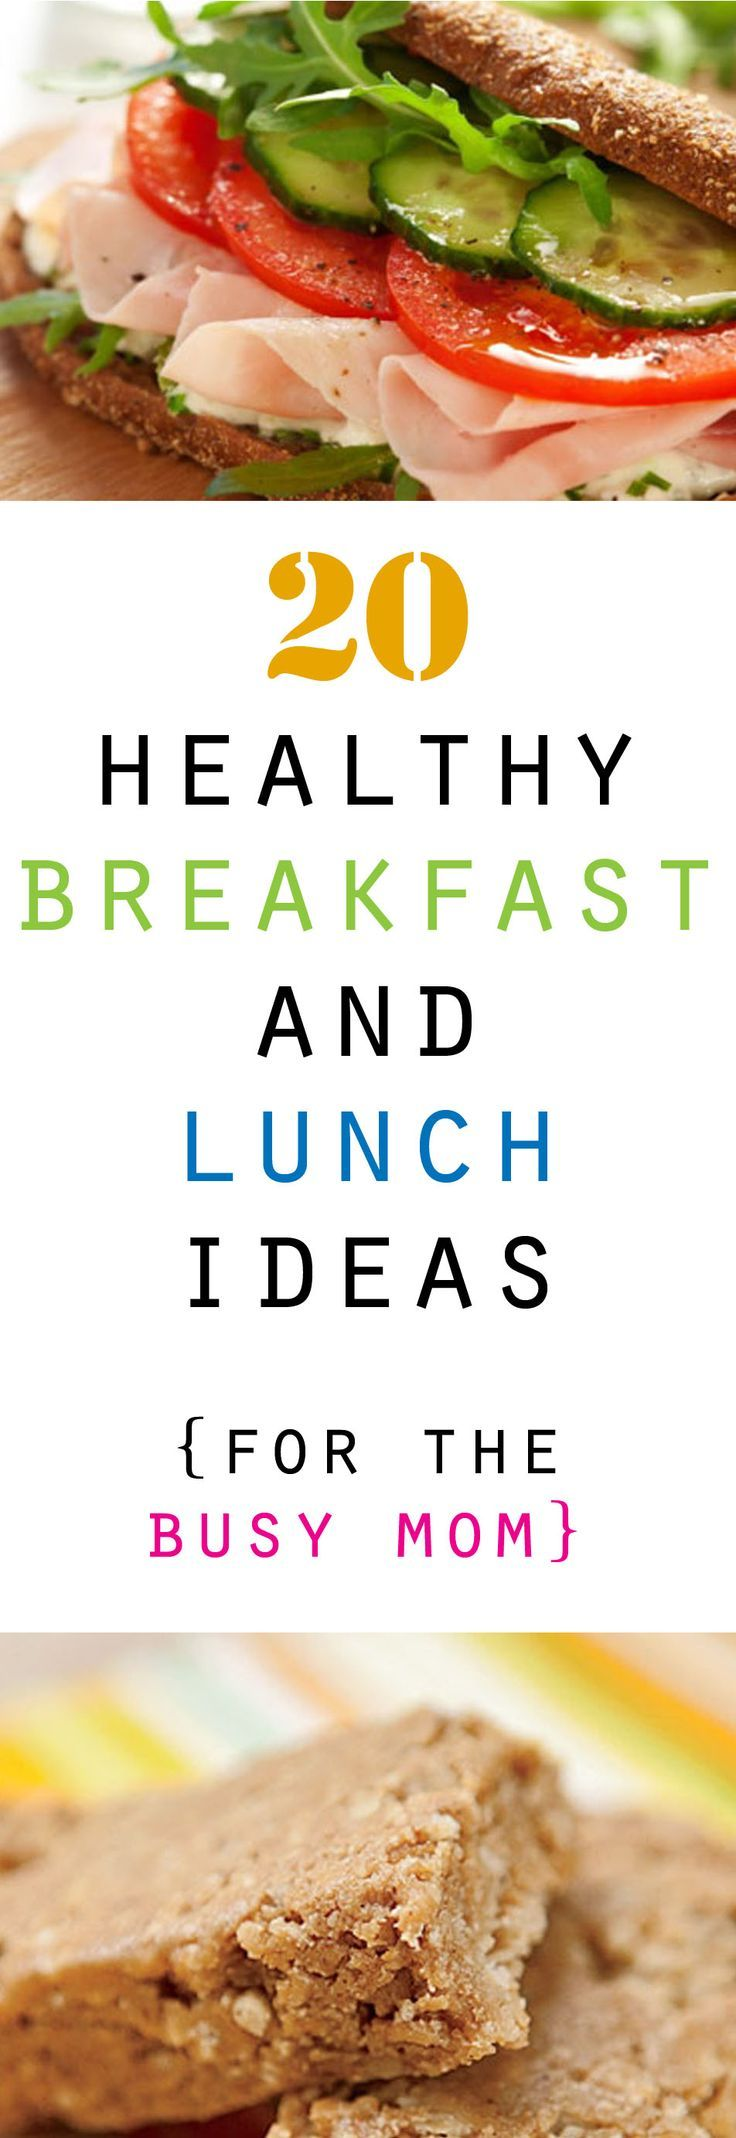 20 Healthy Breakfast and Lunch Ideas--No time for lunch or just no ideas? You can find solutions for both here.